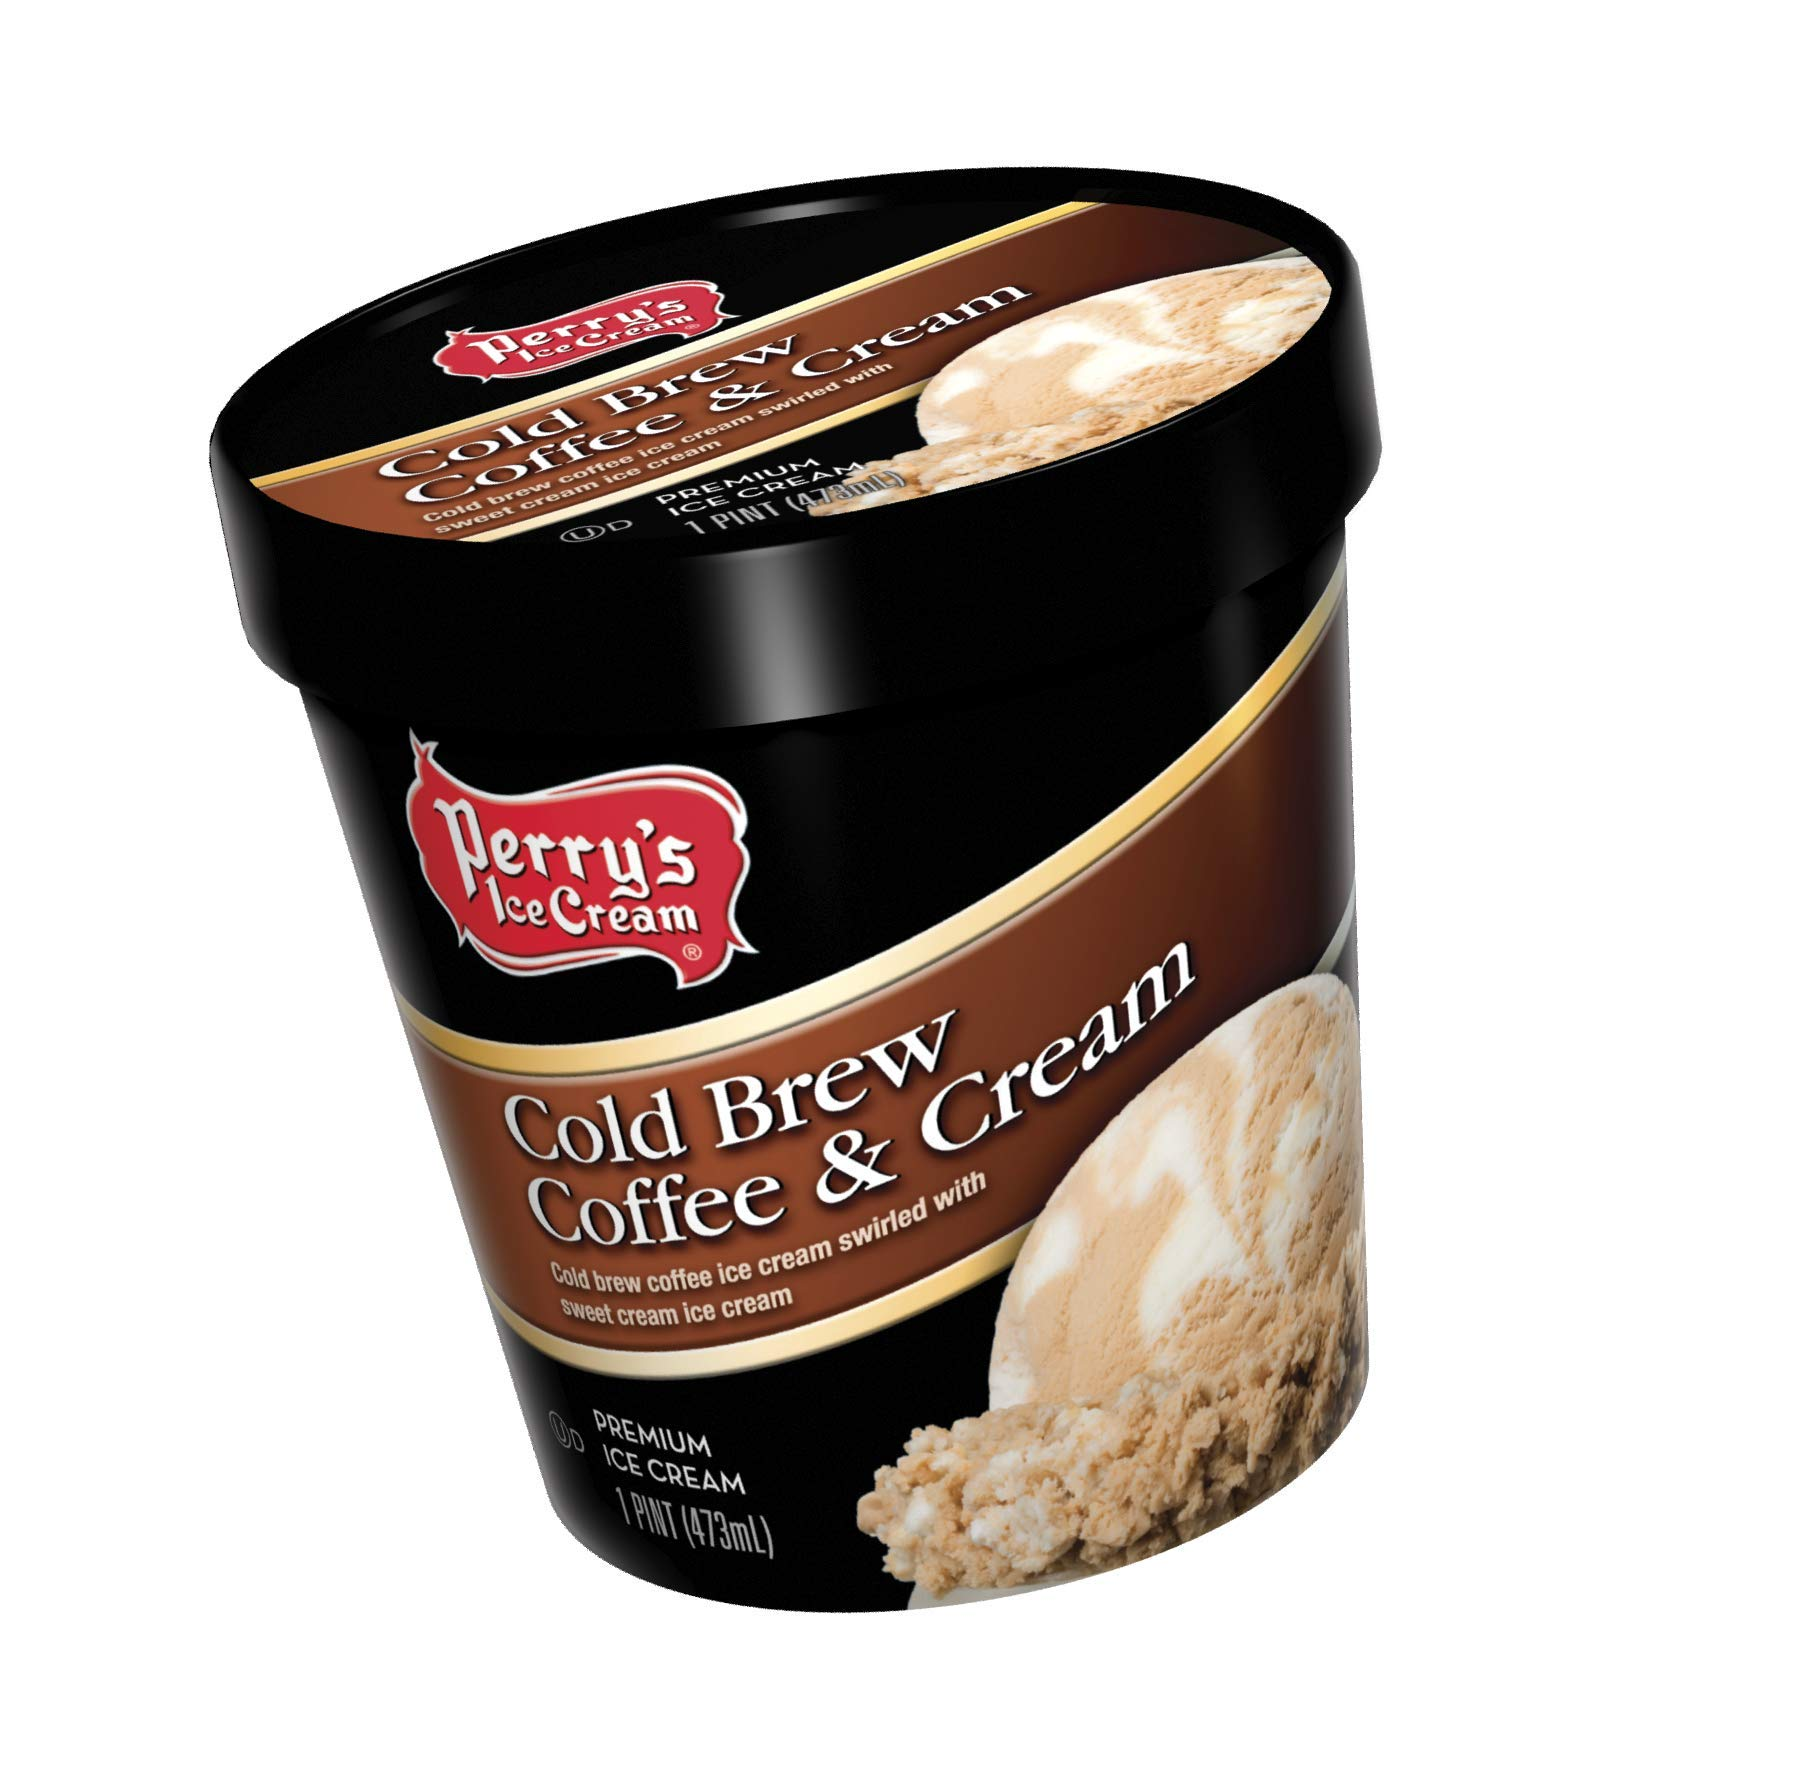 Perry's Ice Cream, Pint, Premium, Cold Brew Coffee & Cream - Pack of 8